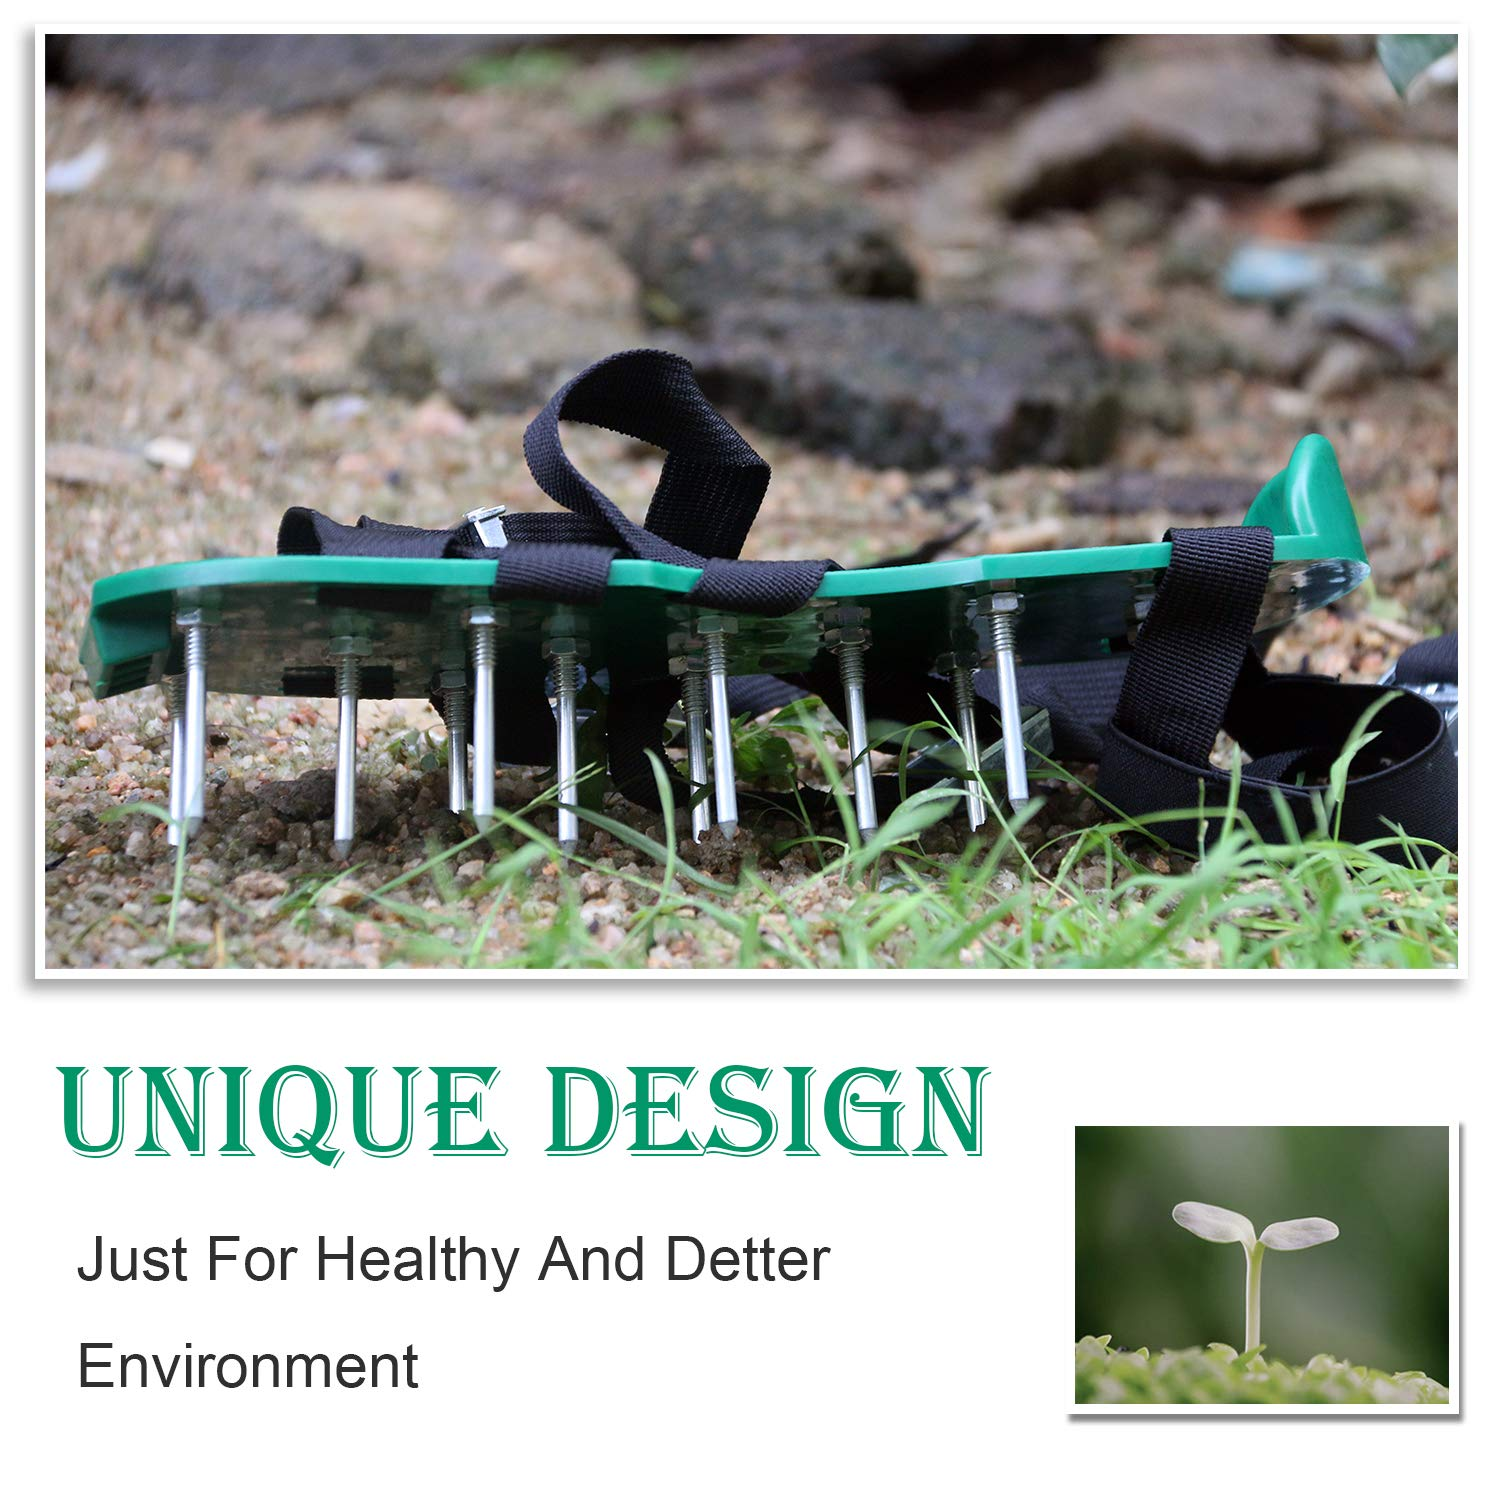 Mavicen Lawn Aerator Shoes with Zinc Alloy Buckles and 4 Adjustable Straps for Aerating Your Yard Roots /& Grass Extra Mini Wrench and 3 Shovels Included Lawn Black